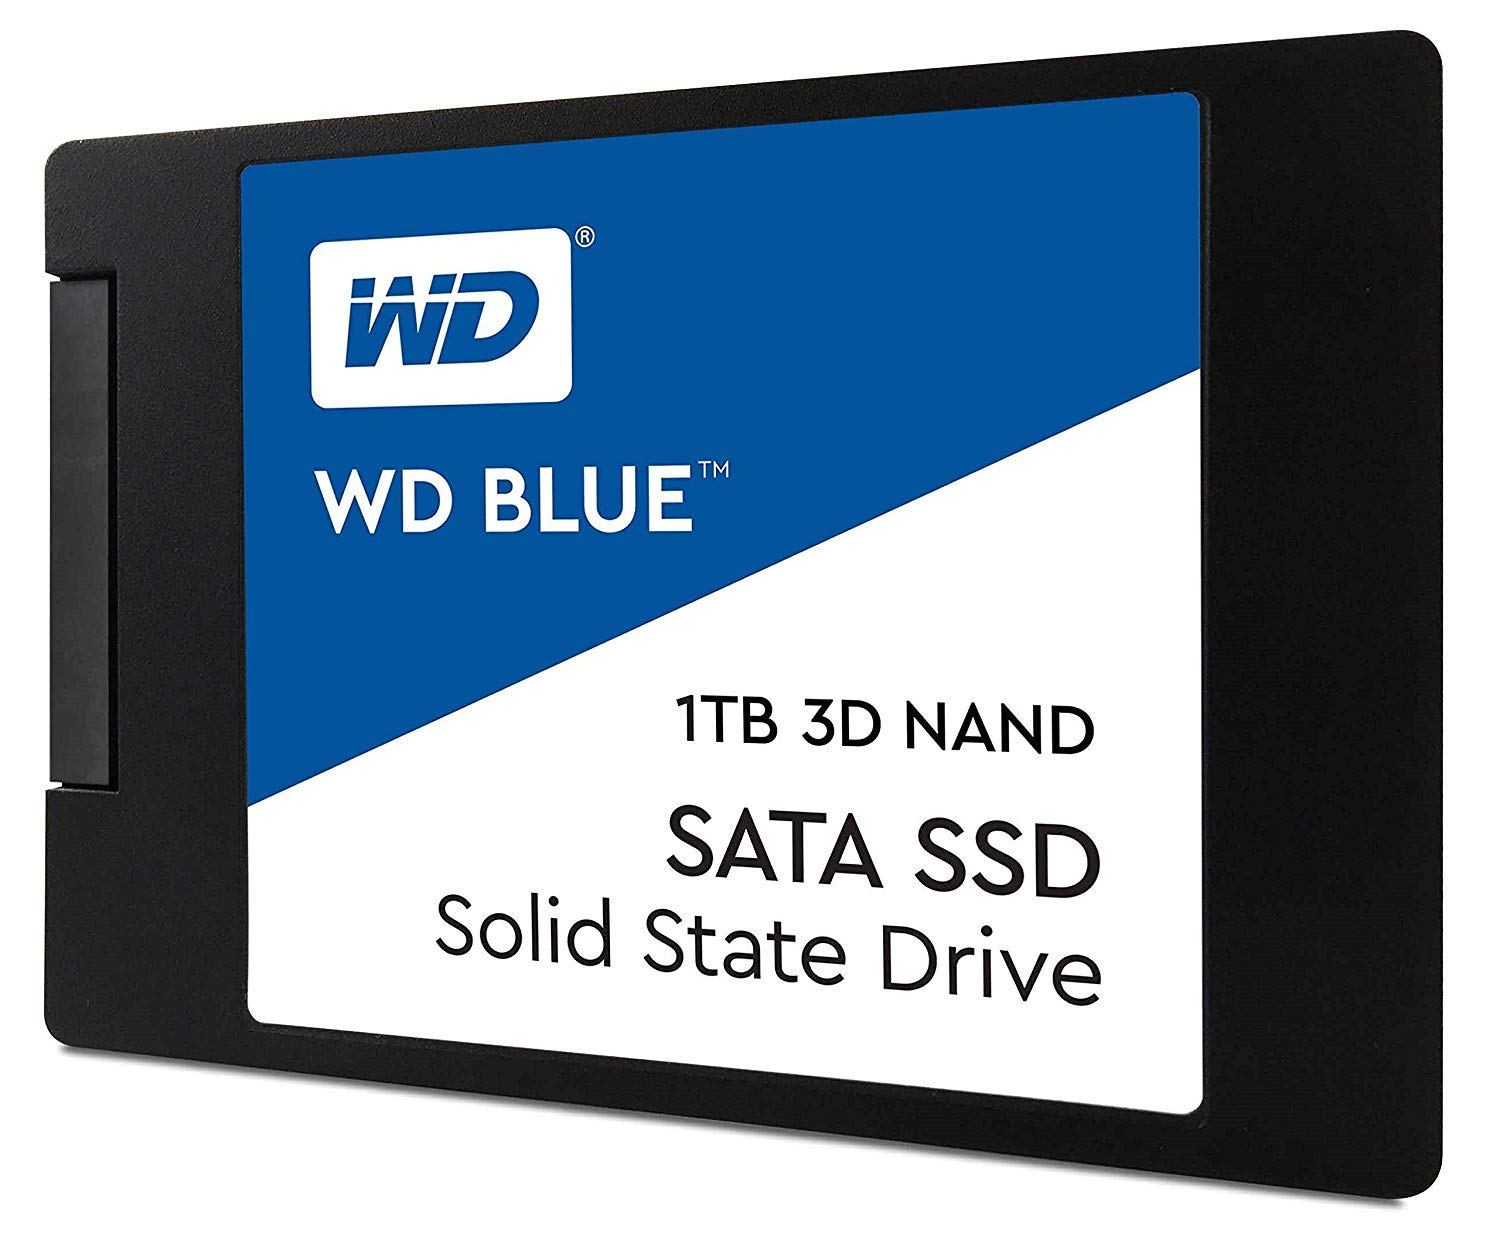 웨스턴 디지털 WD 블루 3D 낸드 SSD 1TB/2TB - WD Blue 3D NAND Internal PC SSD - SATA III